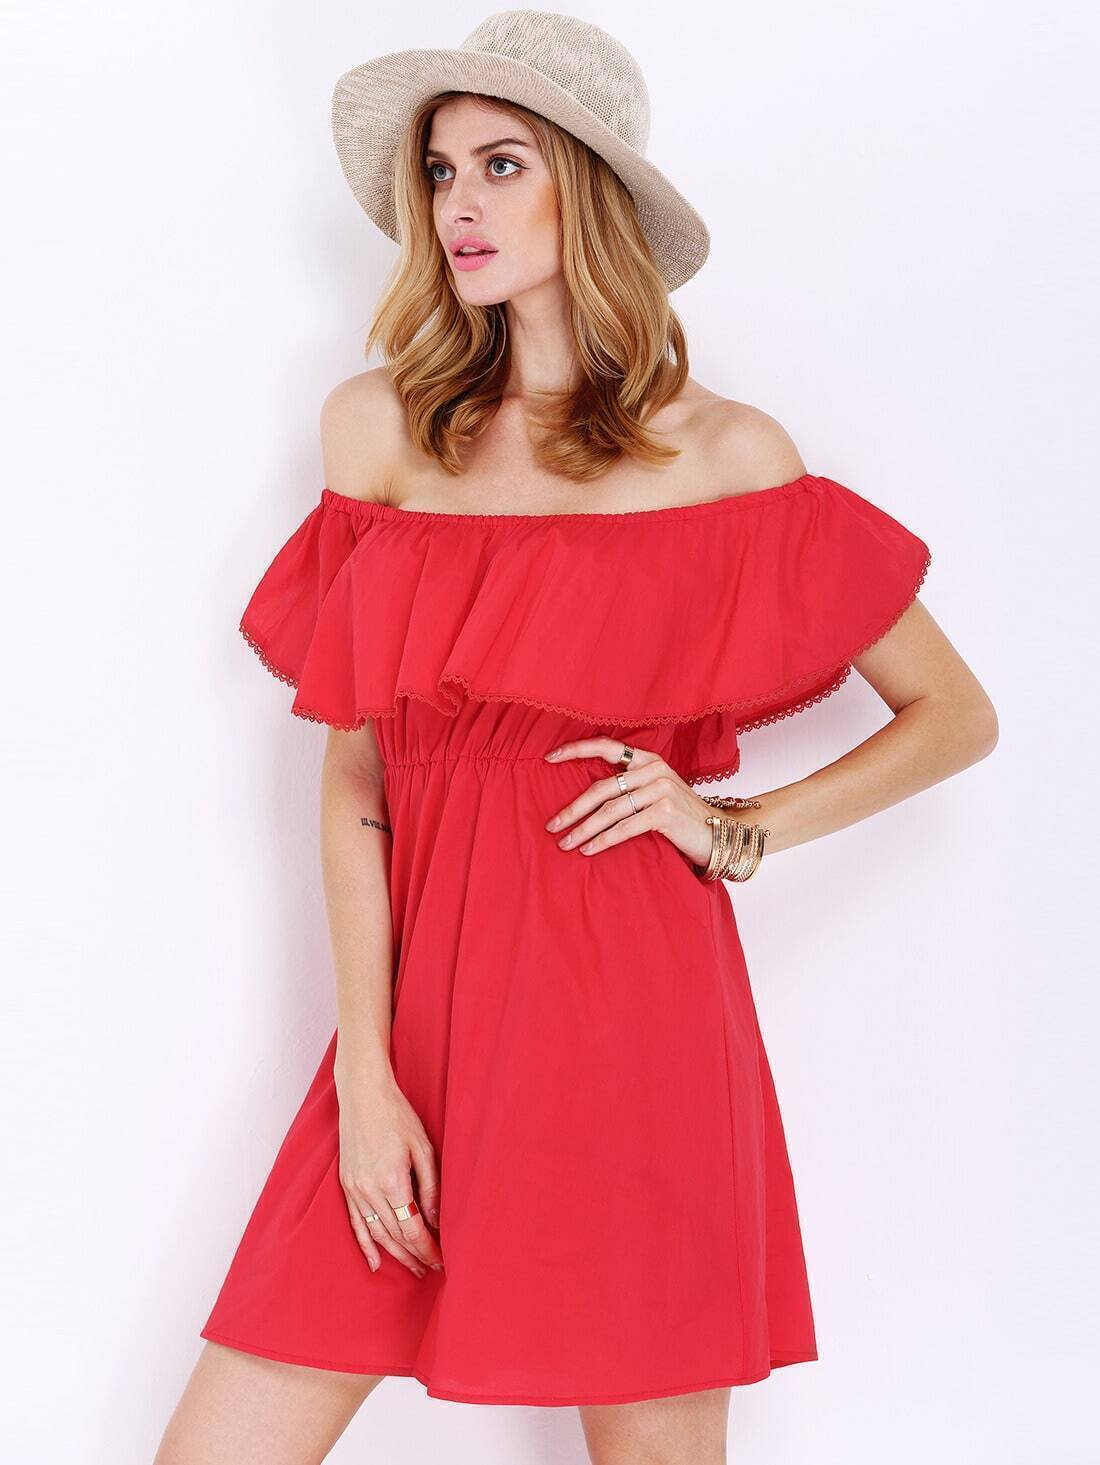 0262d0662e Red Off The Shoulder Frills Wrinkle Ruffle Dress EmmaCloth-Women ...